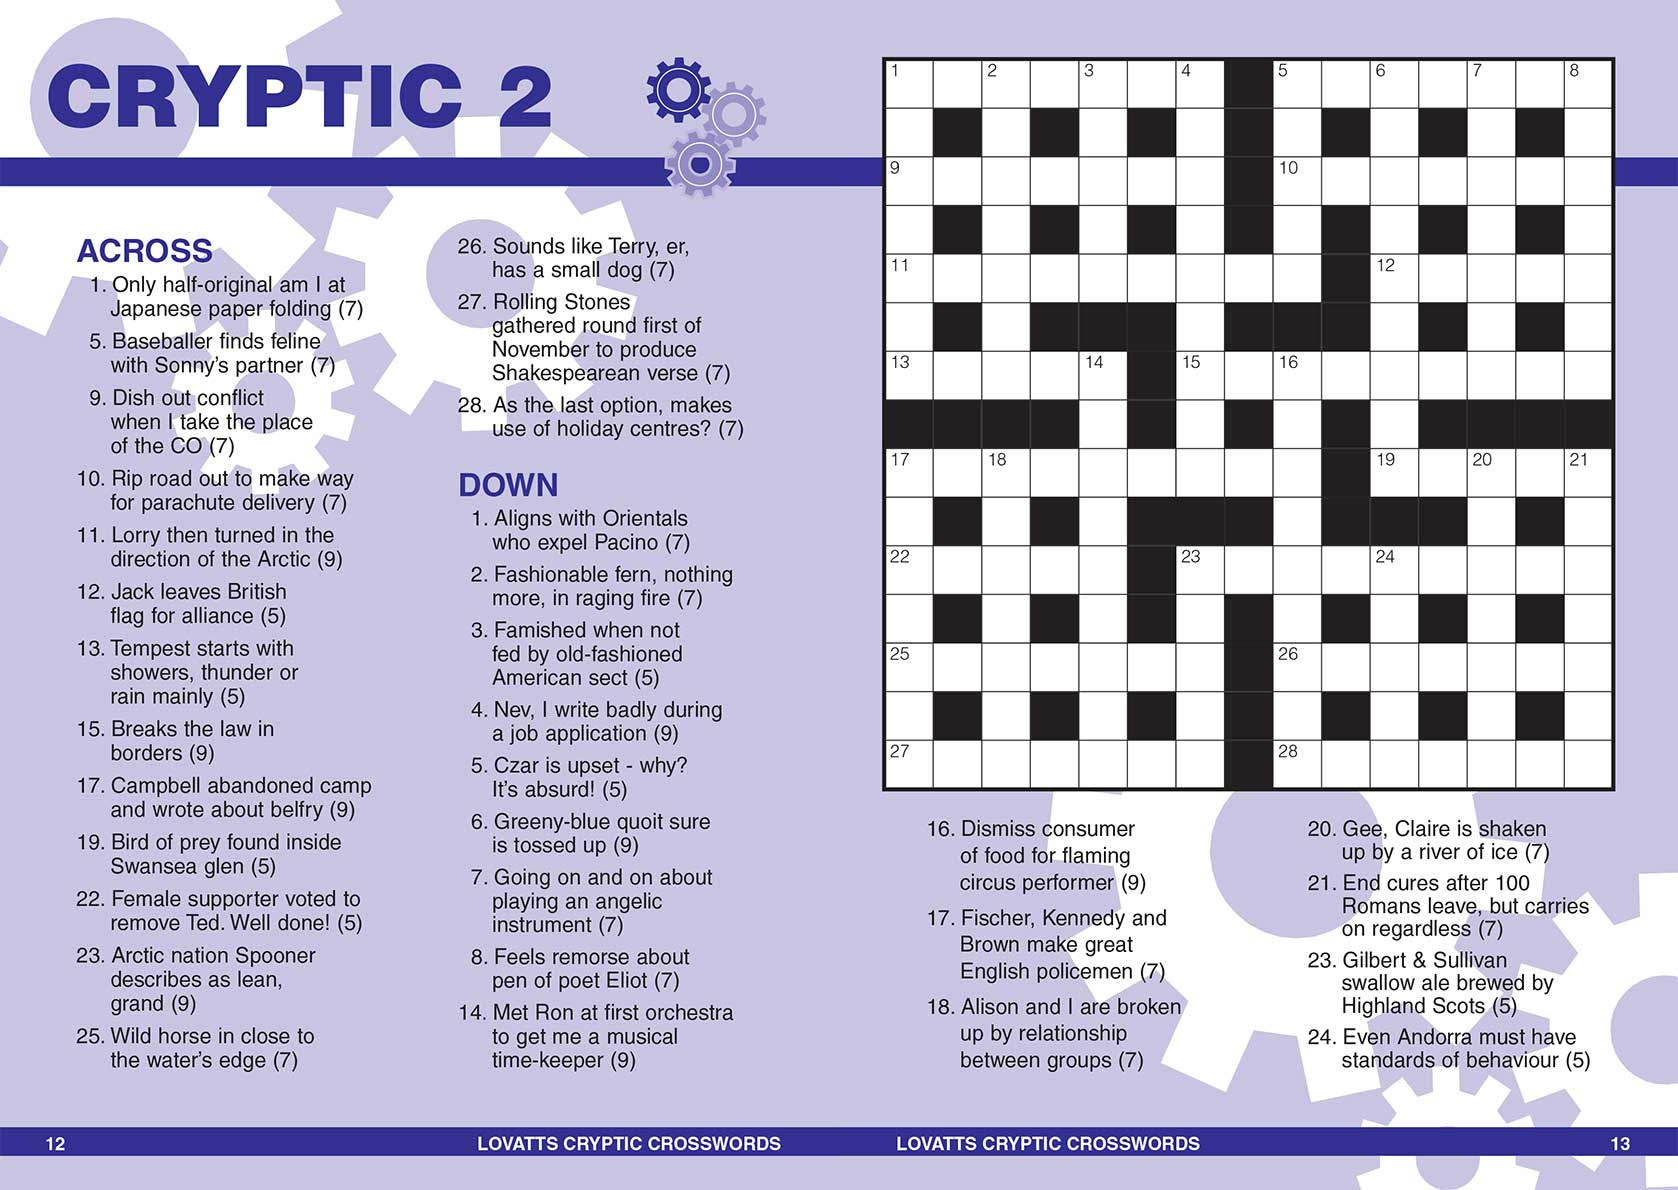 graphic regarding Cryptic Crosswords Printable named Printable Cryptic Crossword Puzzles Nz Printable Crossword